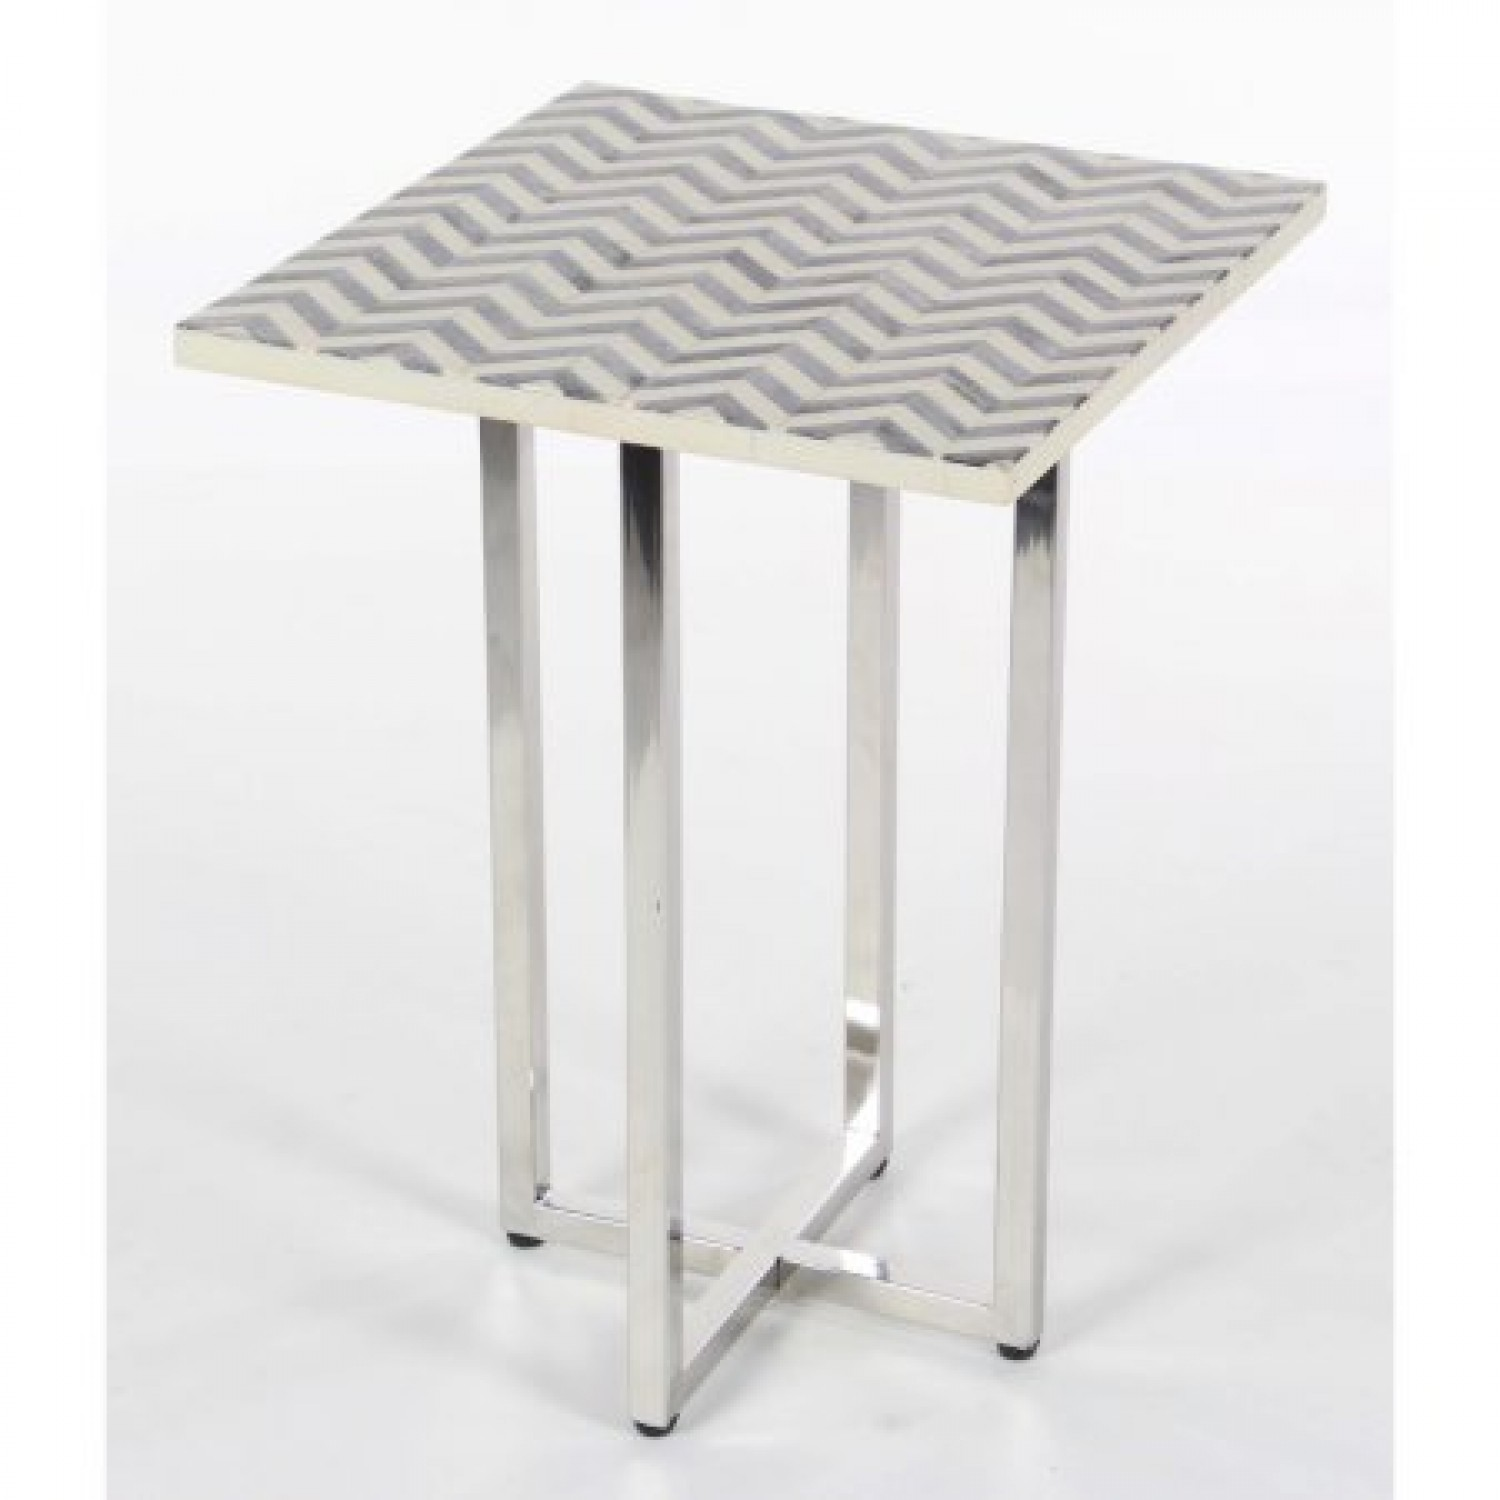 decmode contemporary inch square wood and bone chevron marvelous stainless steel inlay table accent patterned gray razer mouse ouroboros round tablecloth tiny patio furniture